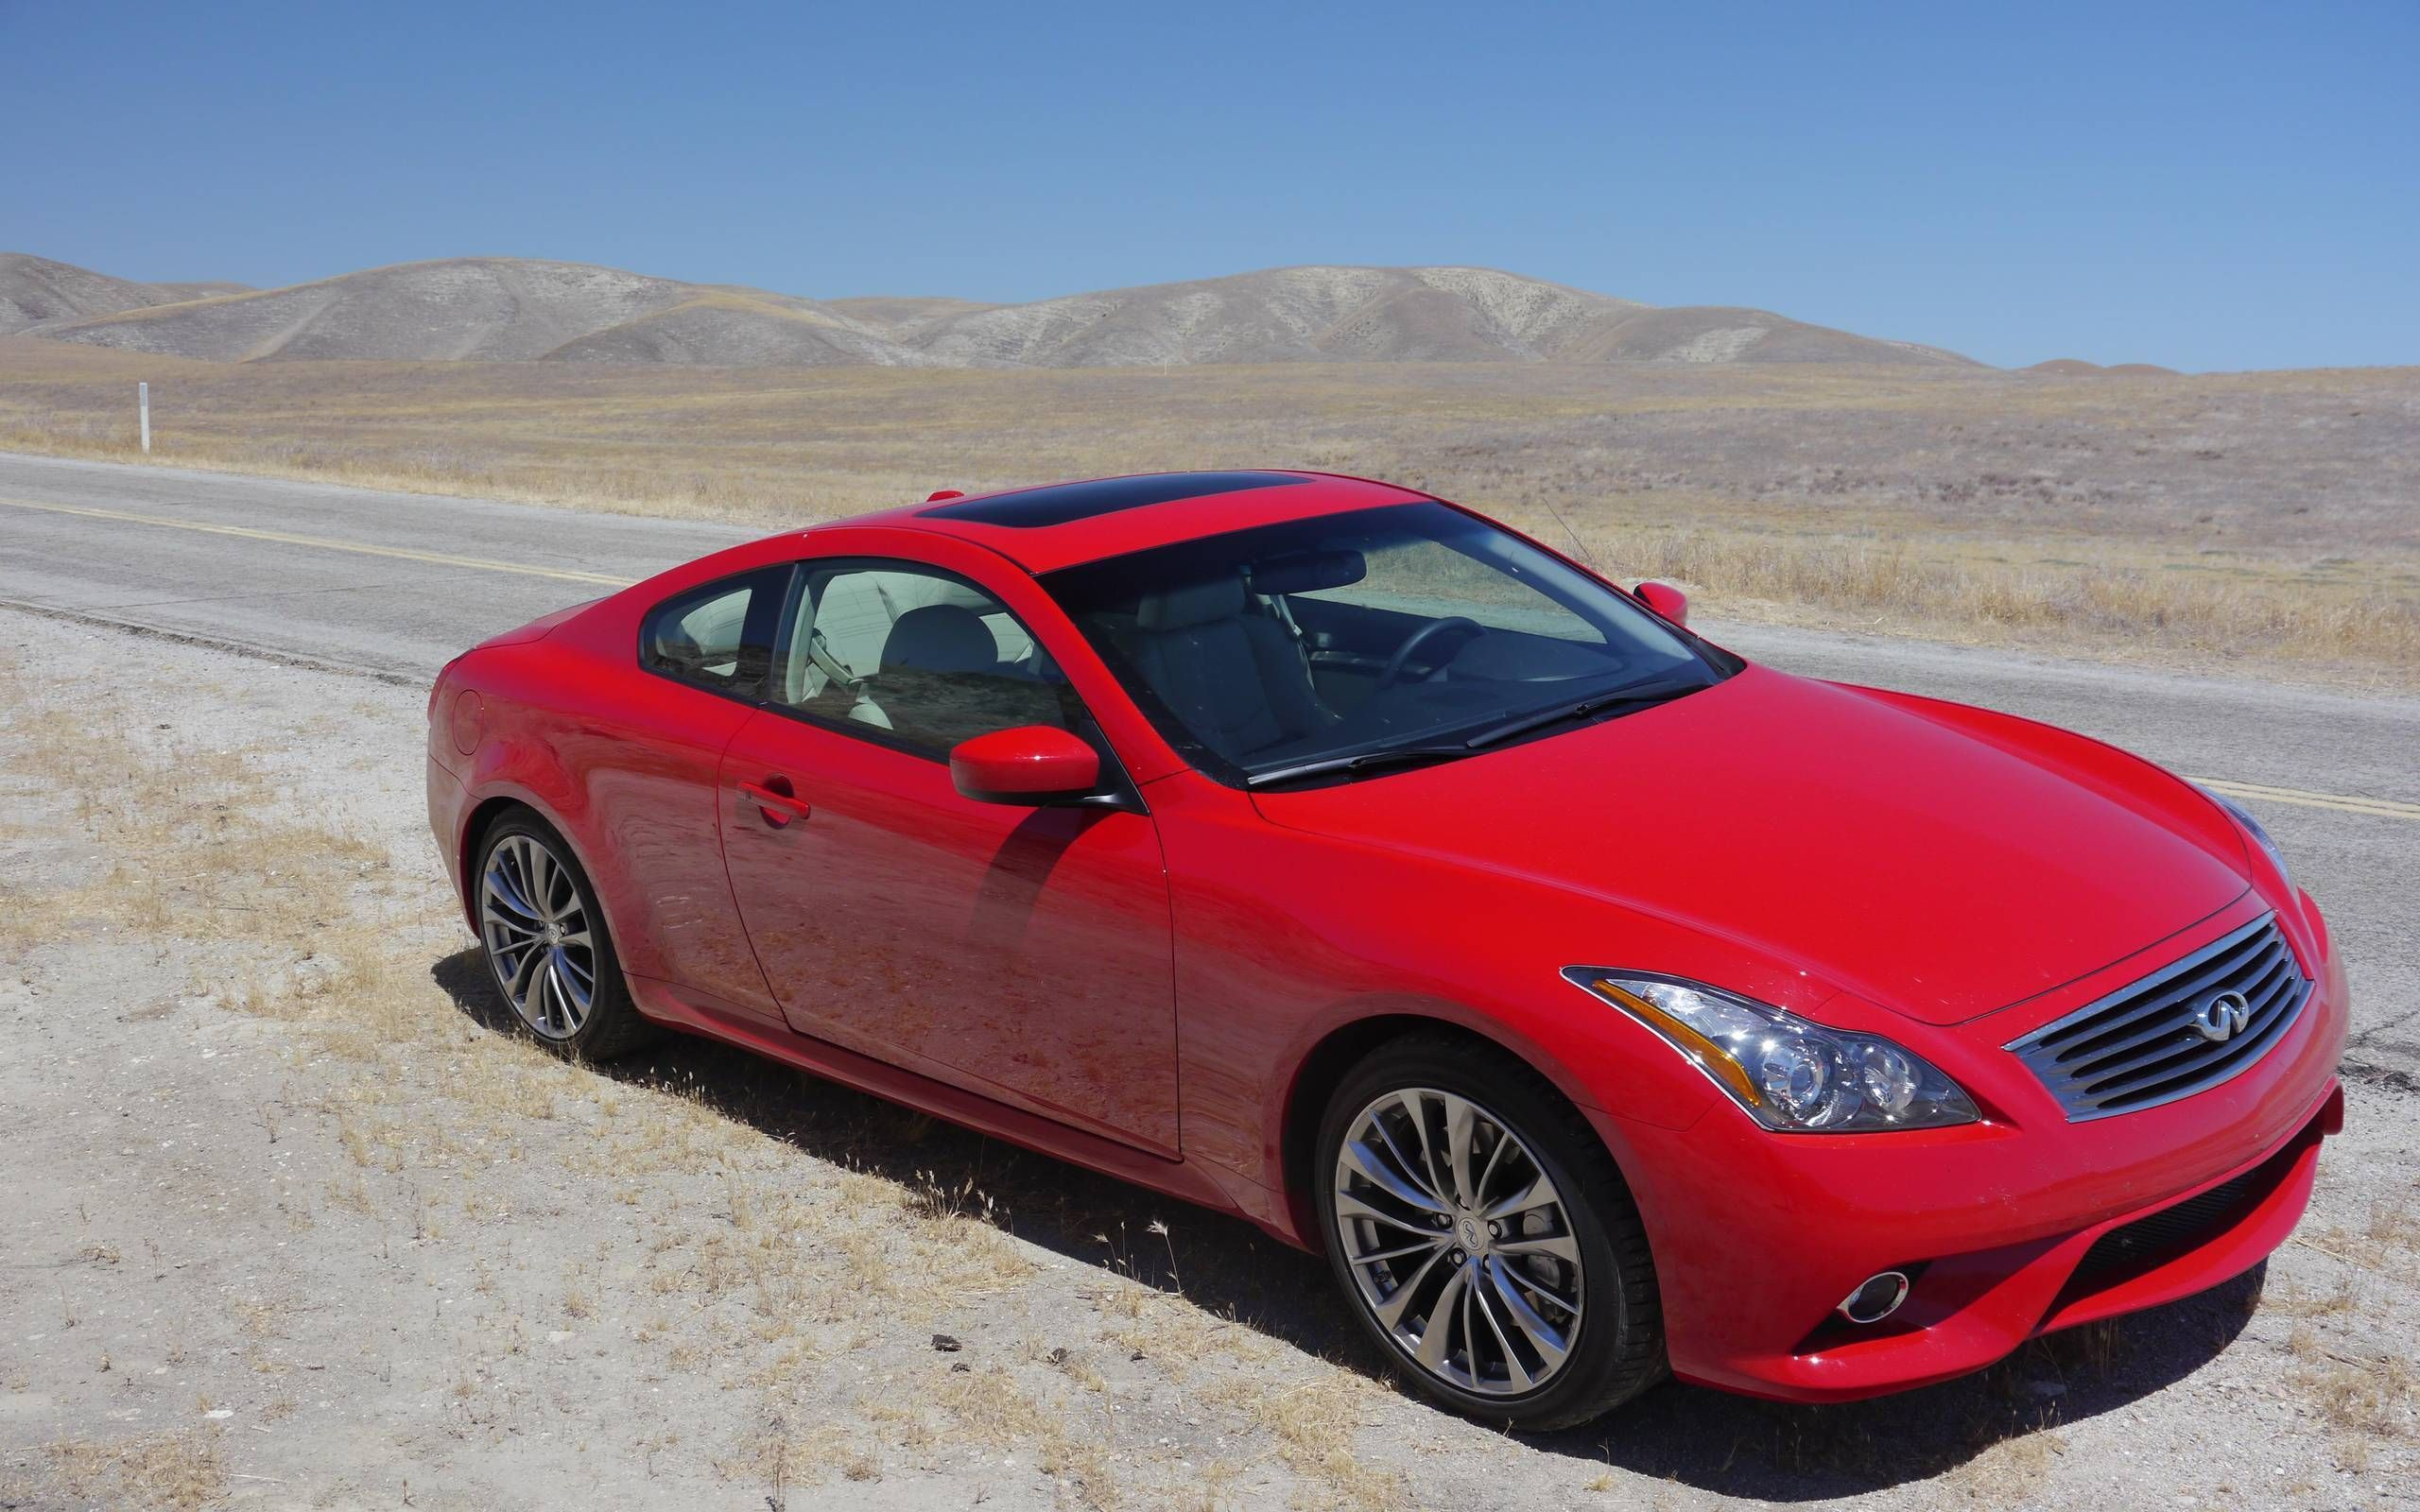 2013 Infiniti G37 Coupe Sport 6mt Review Notes A Sporty Compromise